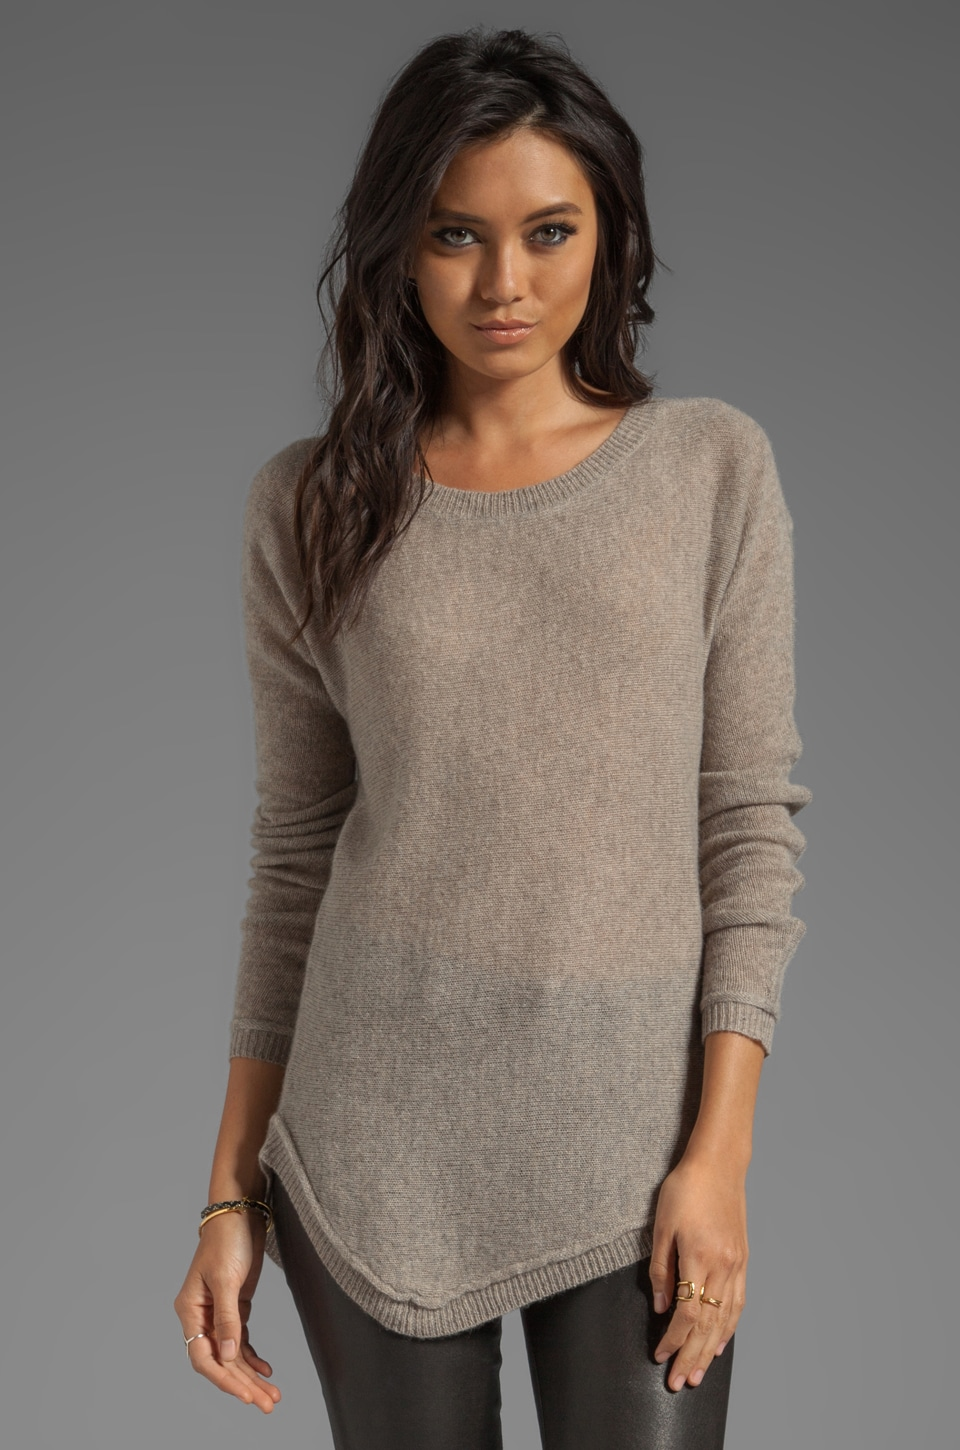 Line The Imperfect Asymmetric Sweater in Mushroom